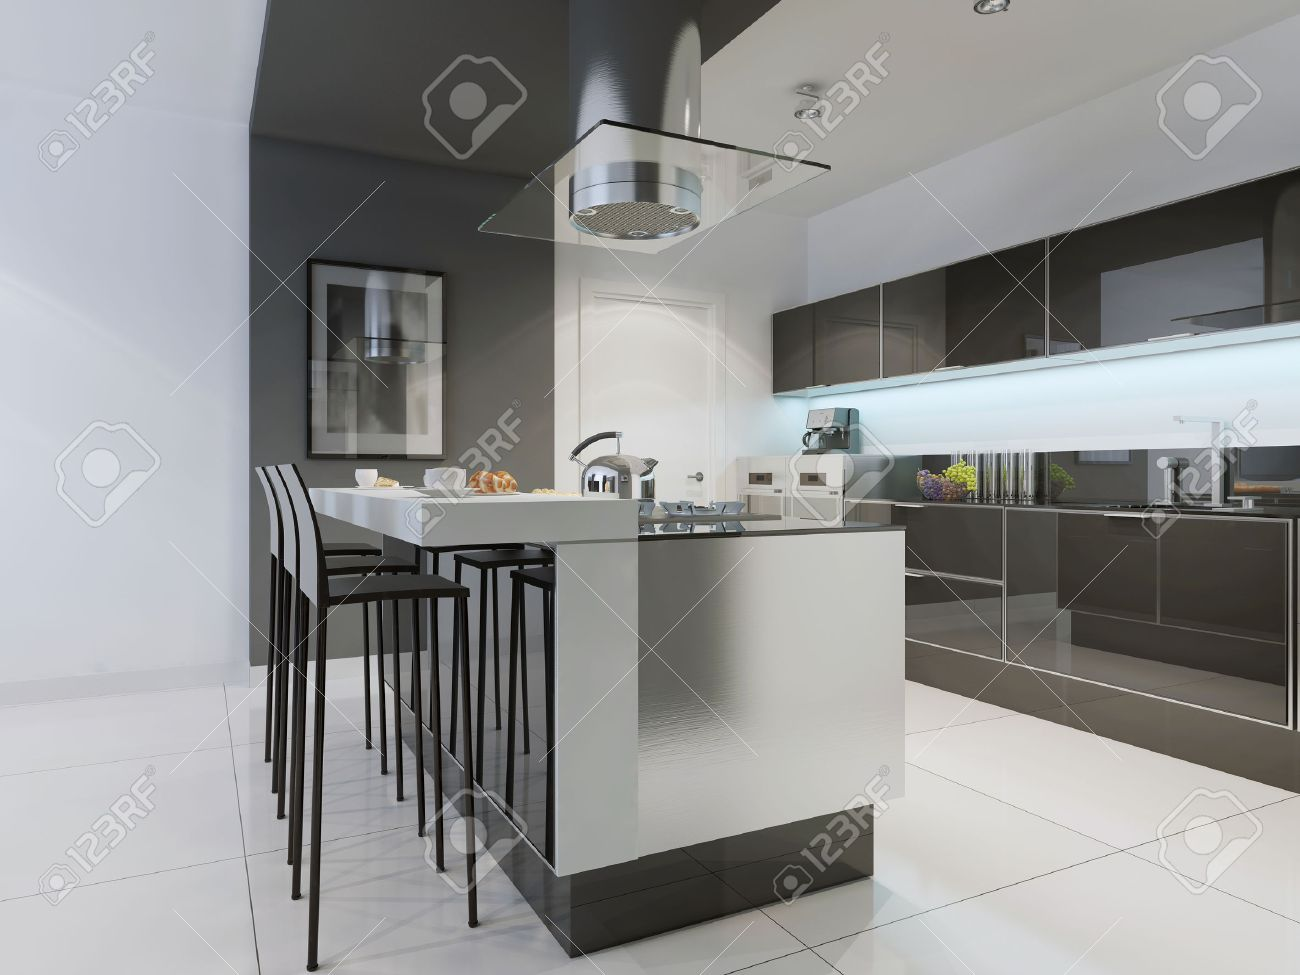 Design Of Modern Kitchen With Island. Flat Panel Cabinets, Black Glossy  Furniture, Ceiling